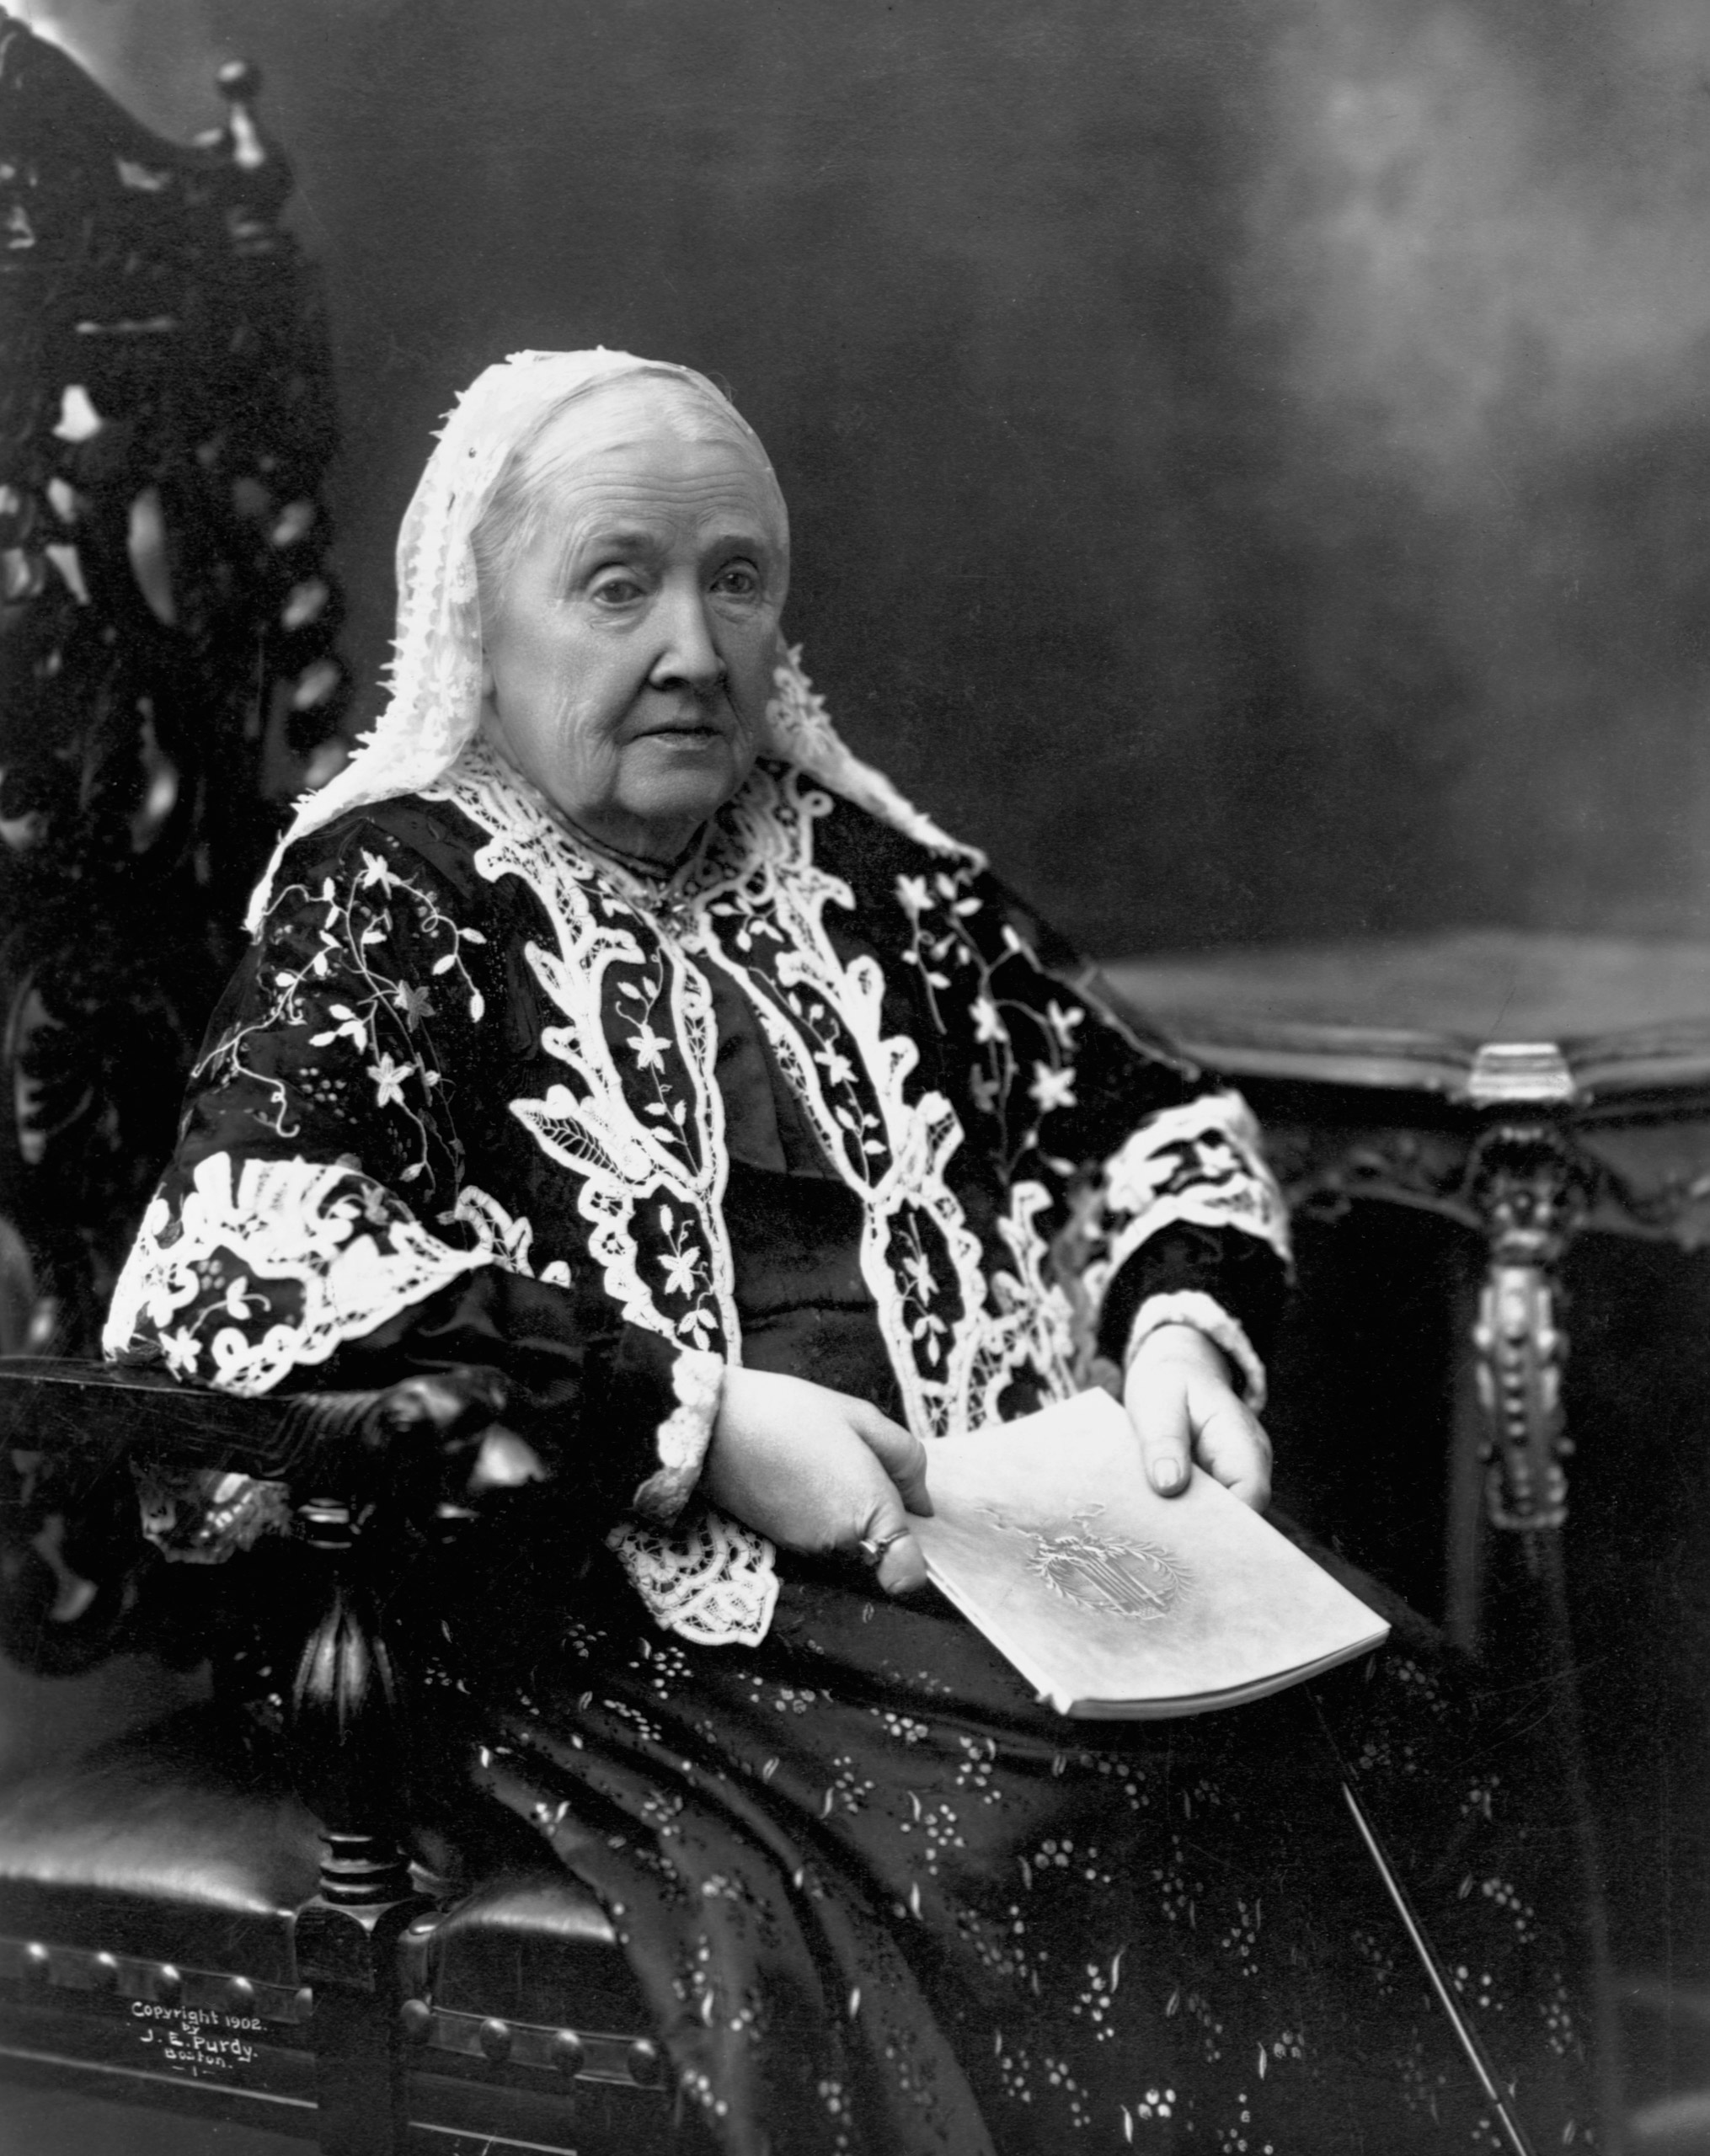 Julia Ward Howe (1819-1910), pictured circa 1890s.Howe, a poet and heiress, wrote the Battle Hymn of the Republic. She was an editor of the suffragist paper The Woman's Journal.